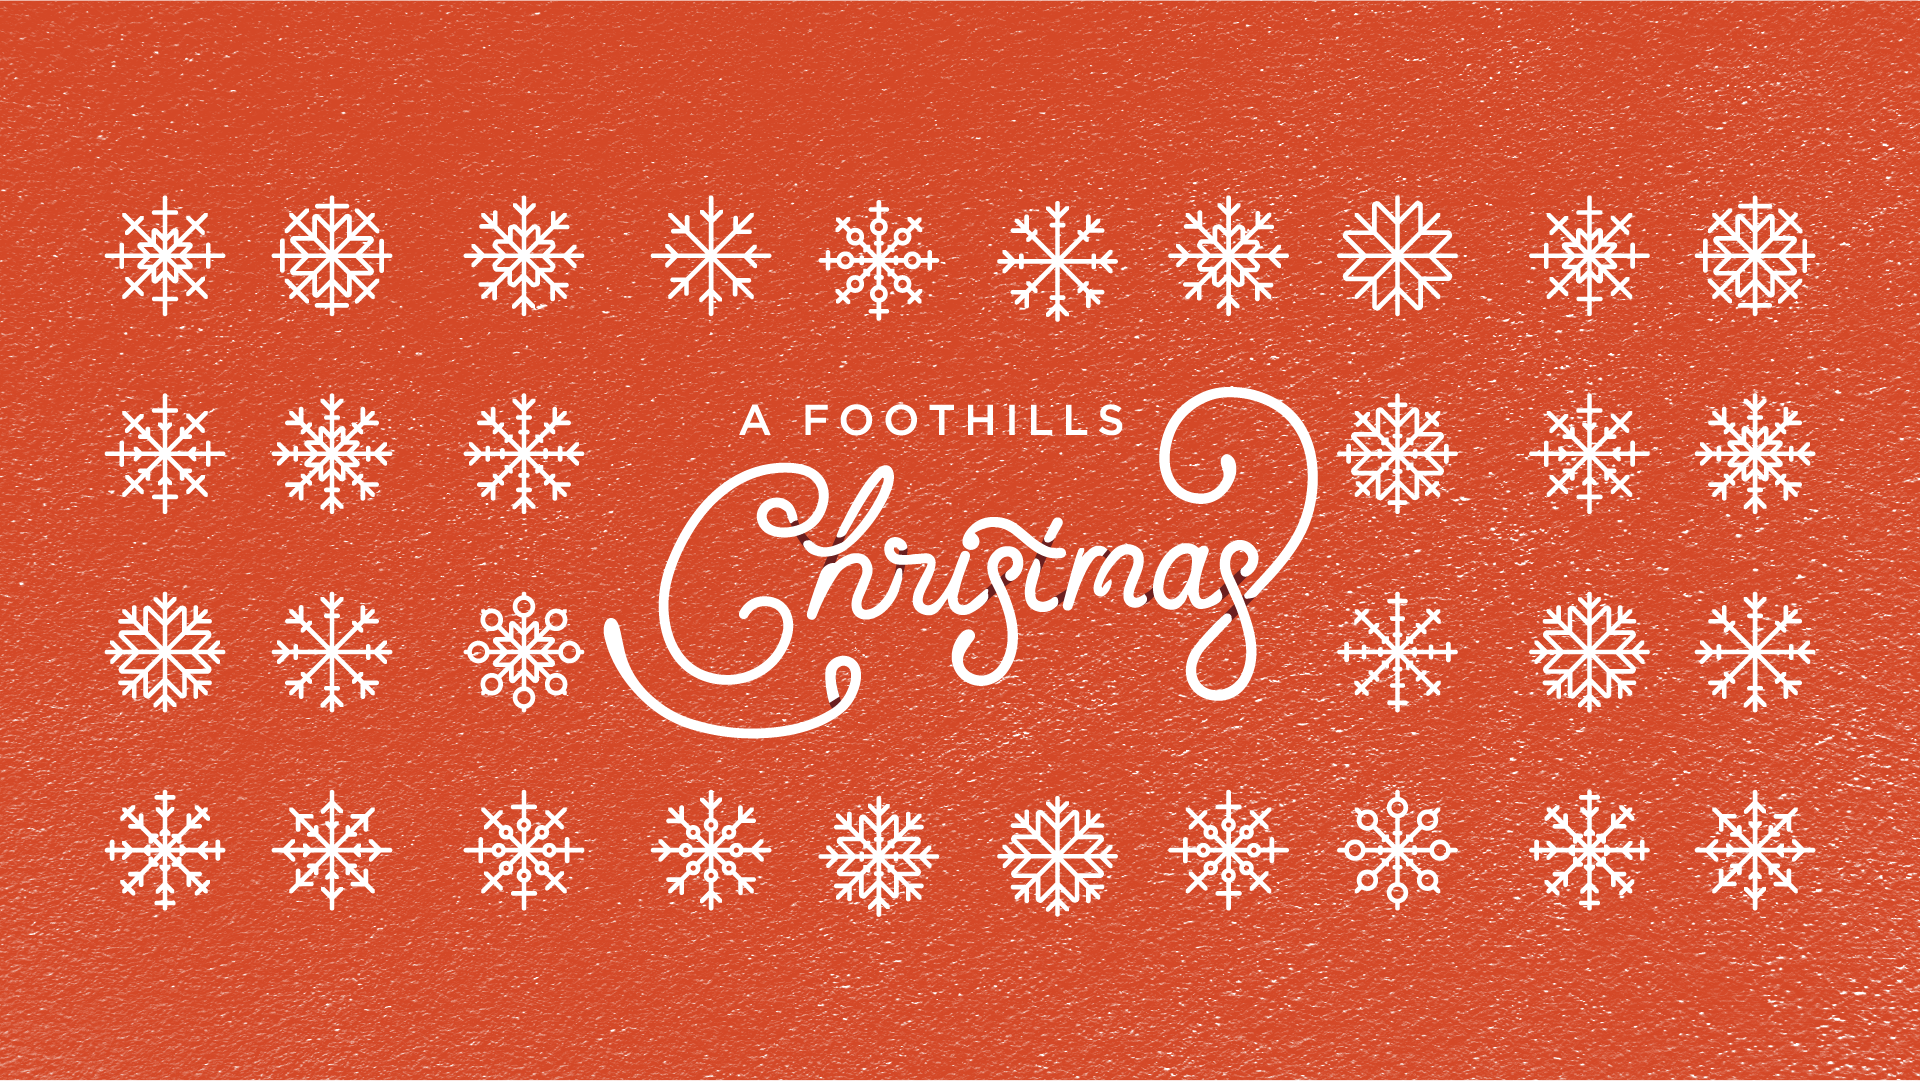 a Foothills Christmas